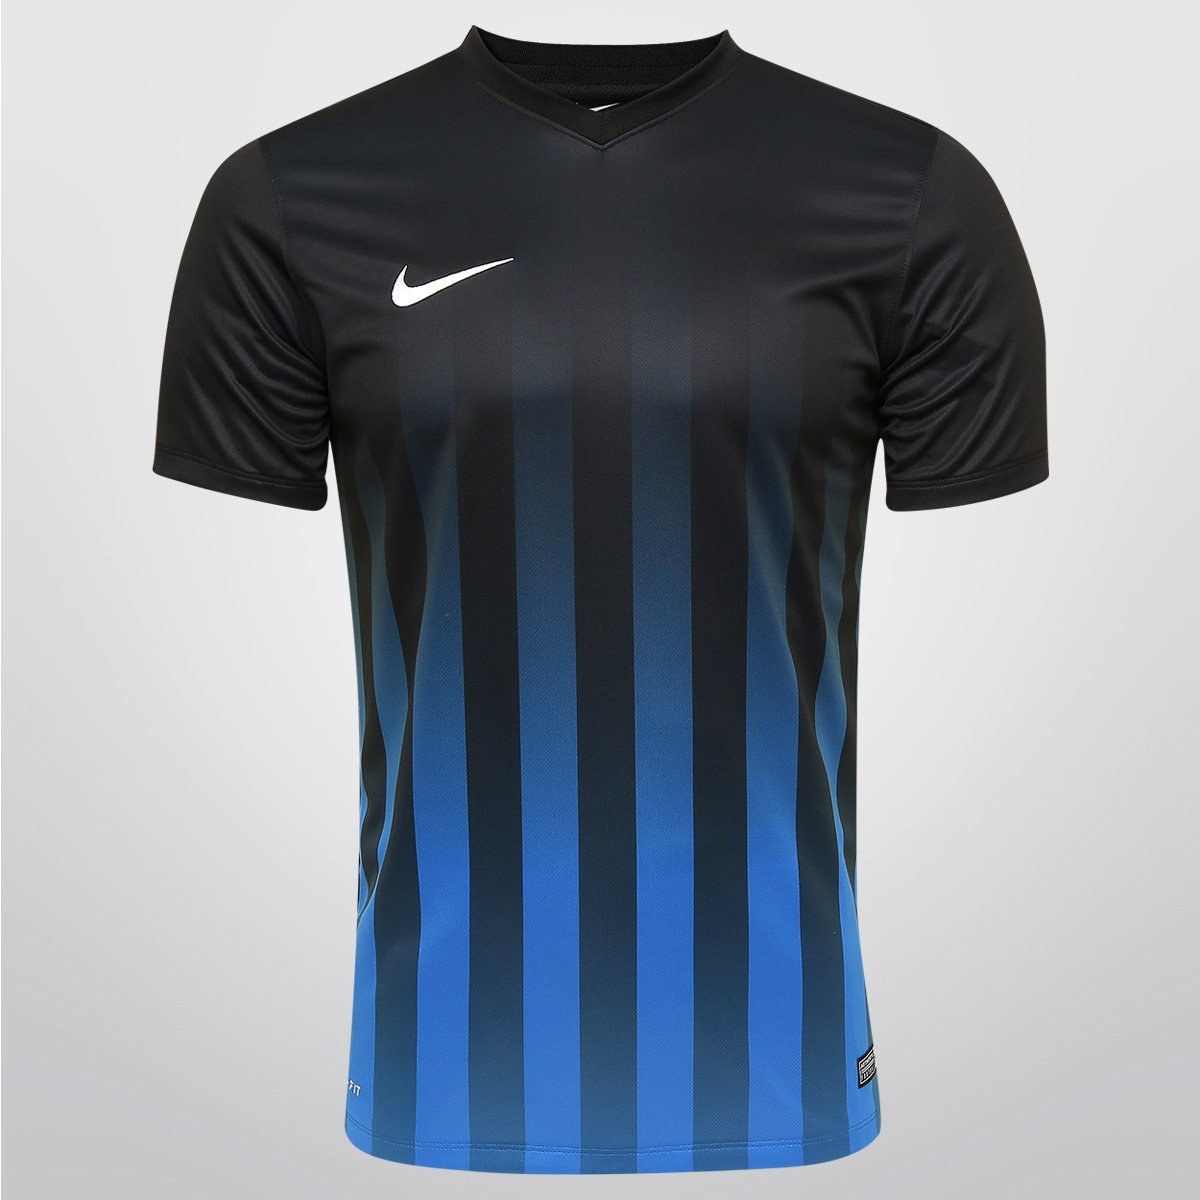 73bf9bb056 Camisa Nike Striped Division II - Compre Agora